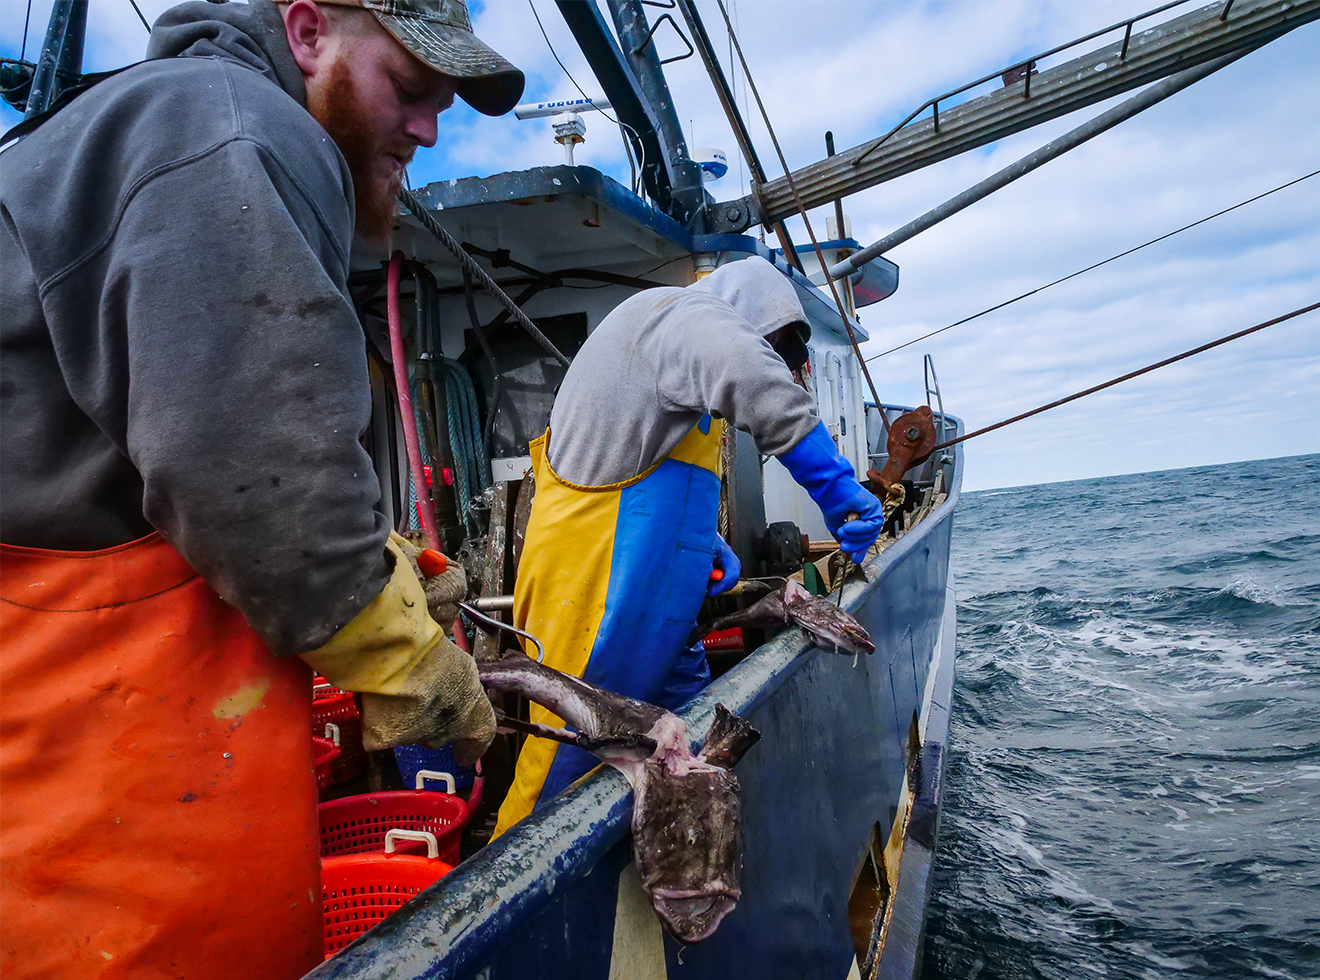 More than 100 miles offshore, brothers Dave Smith (left) and Ryan Smith clean monkfish on Rhonda Denise.